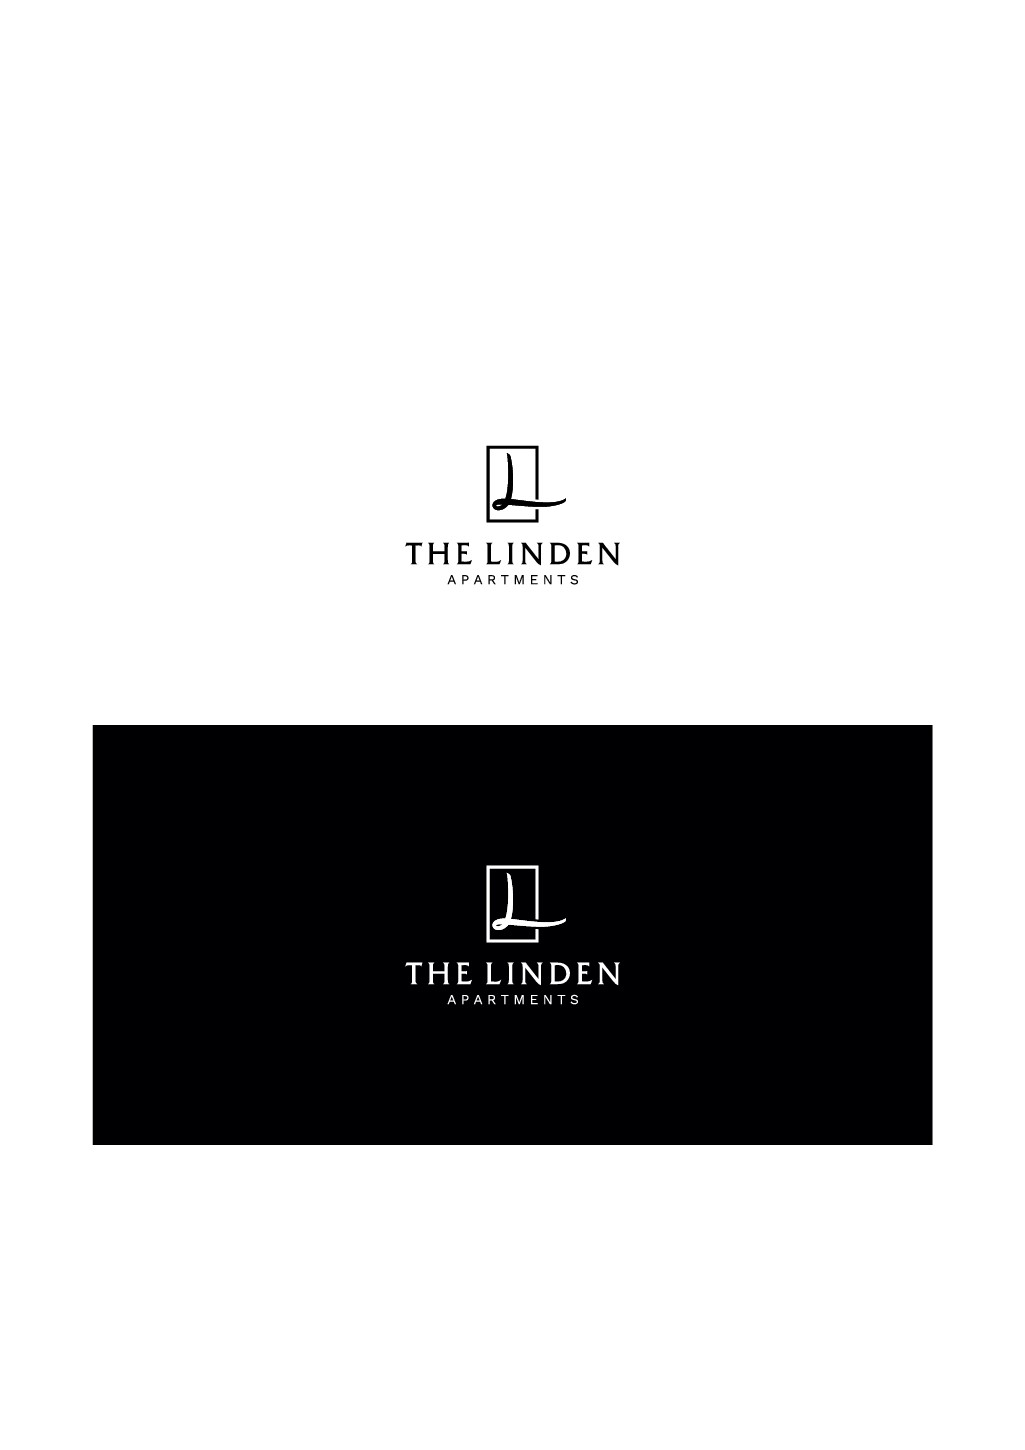 The Linden Apartments Logo Design Contest